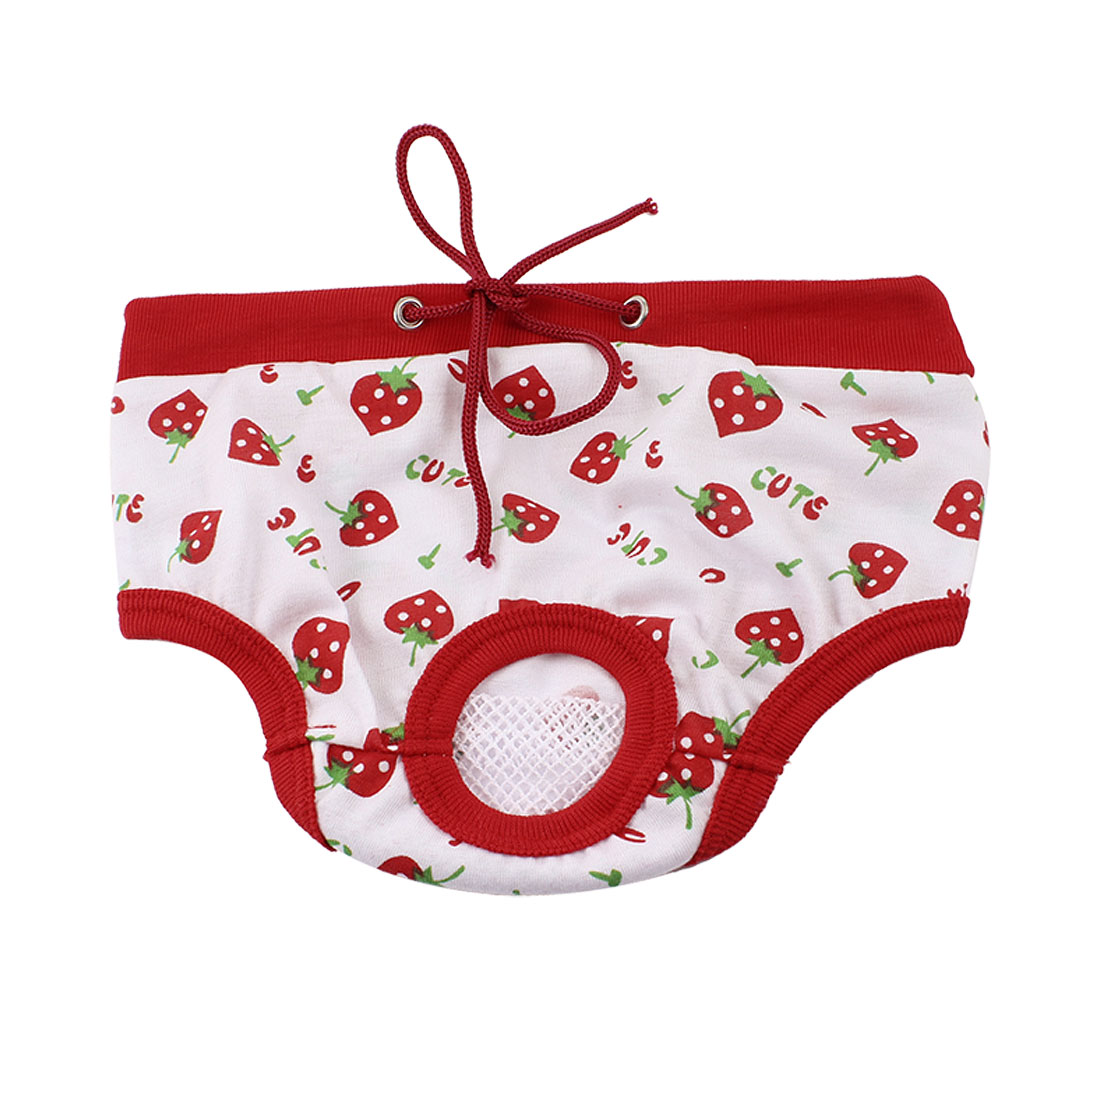 Pet Dog Doggy Strawberry Printed Adjustable Waist Diaper Pants Red White L